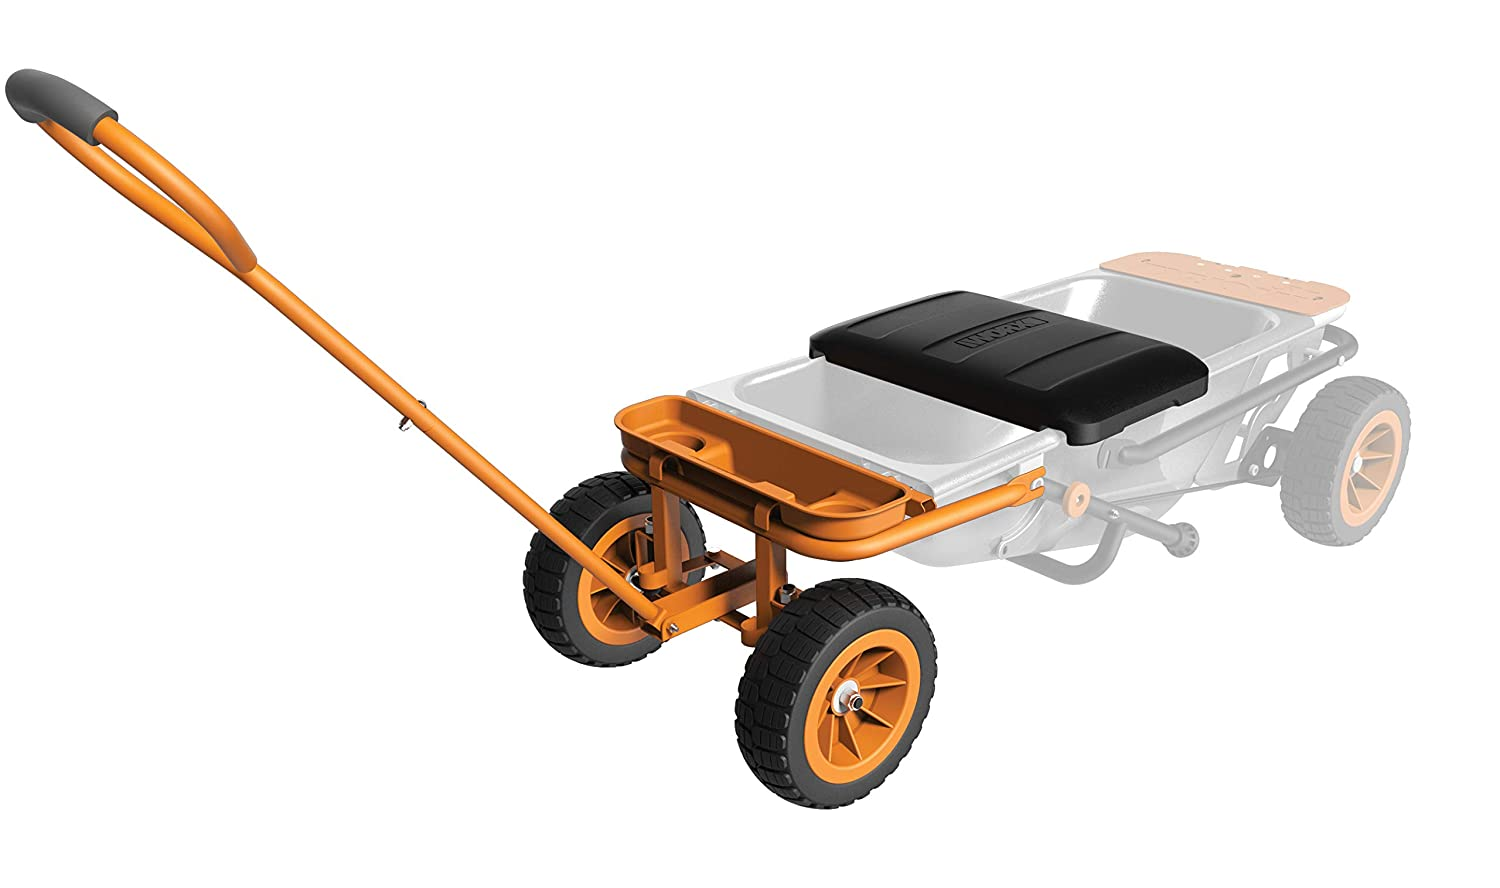 WORX WA0228 Aerocart Wheelborrow Wagon Kit, 19 x 10 x 21 , Orange, Black, and Silver